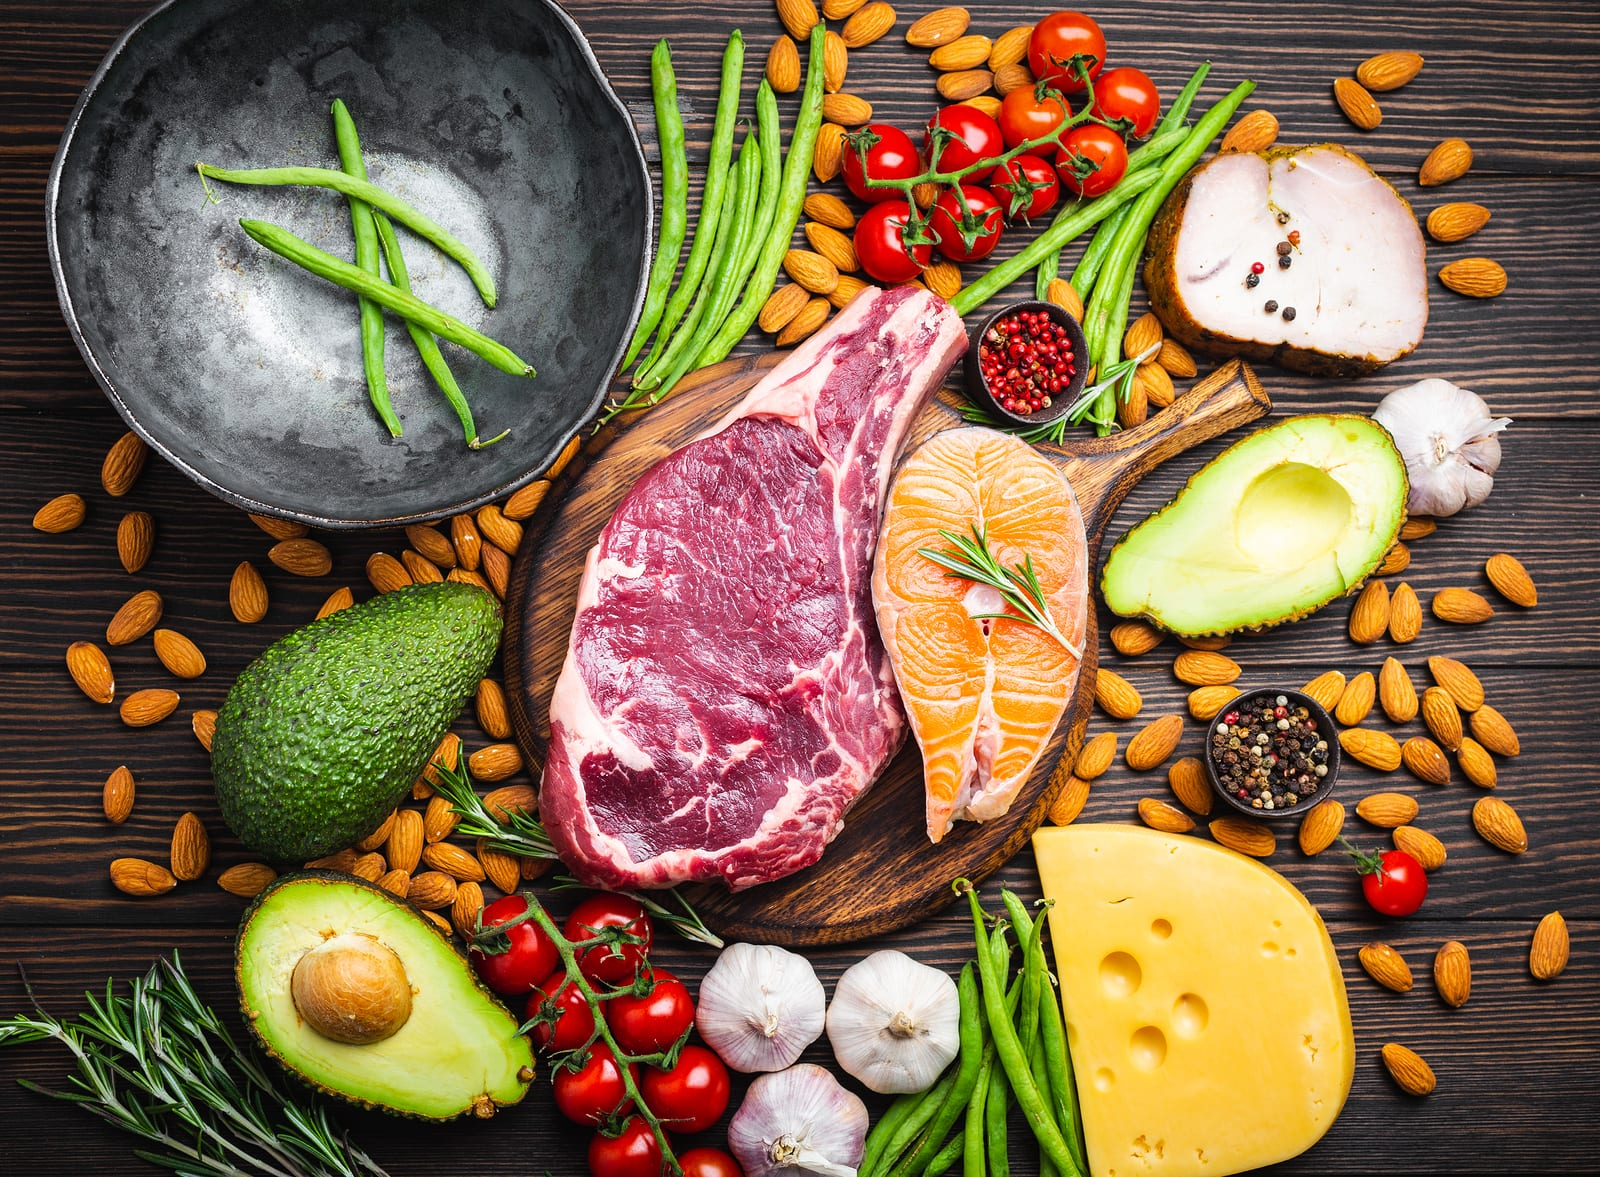 A healthy balanced diet of red meat, fatty fish, and other healthy options are laid out in an appetizing arrangement on a wooden table.